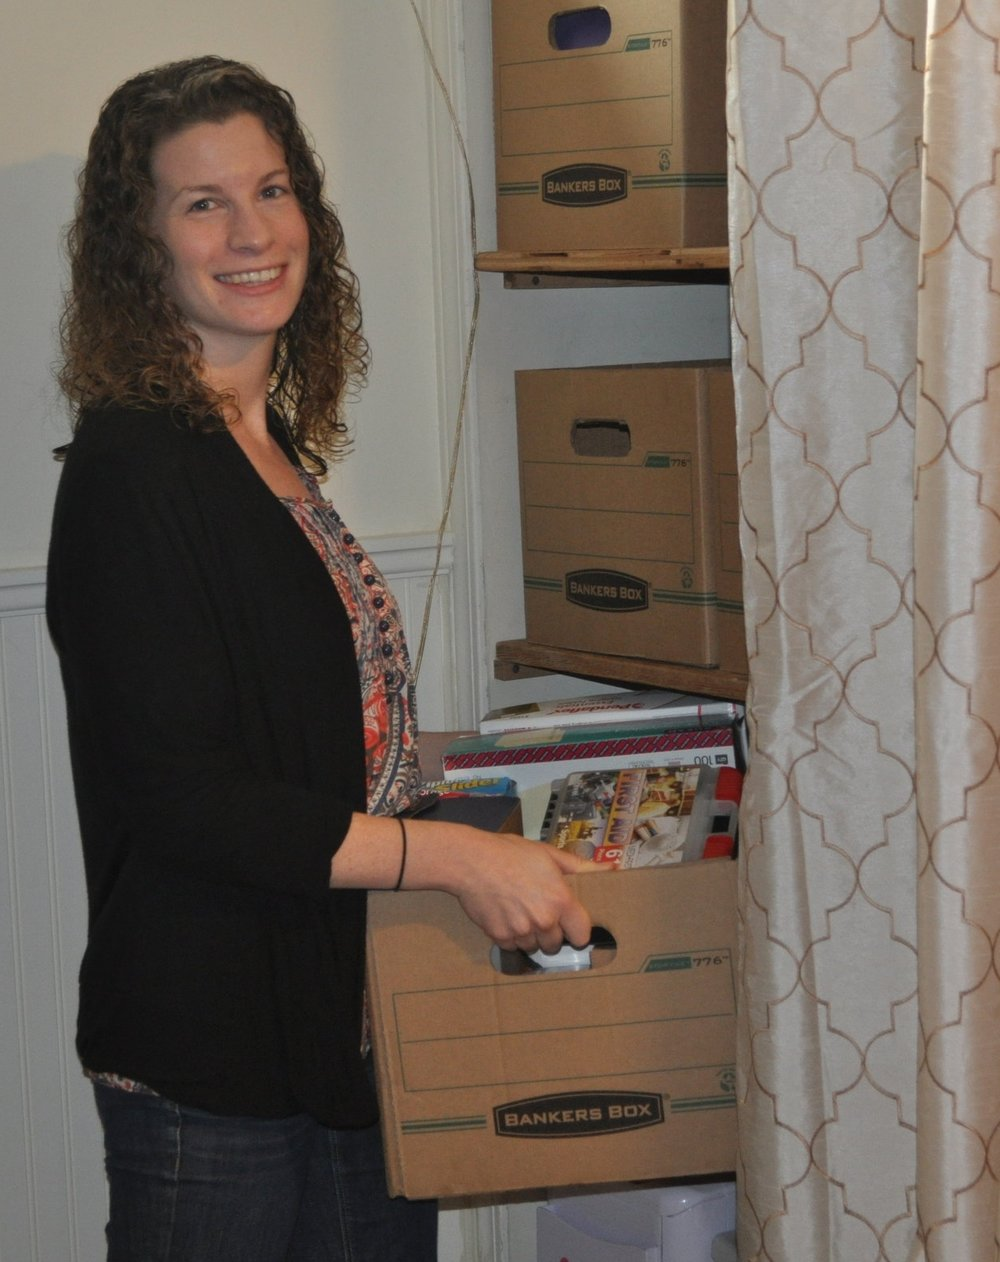 Casey organizing boxes and making space for a client.